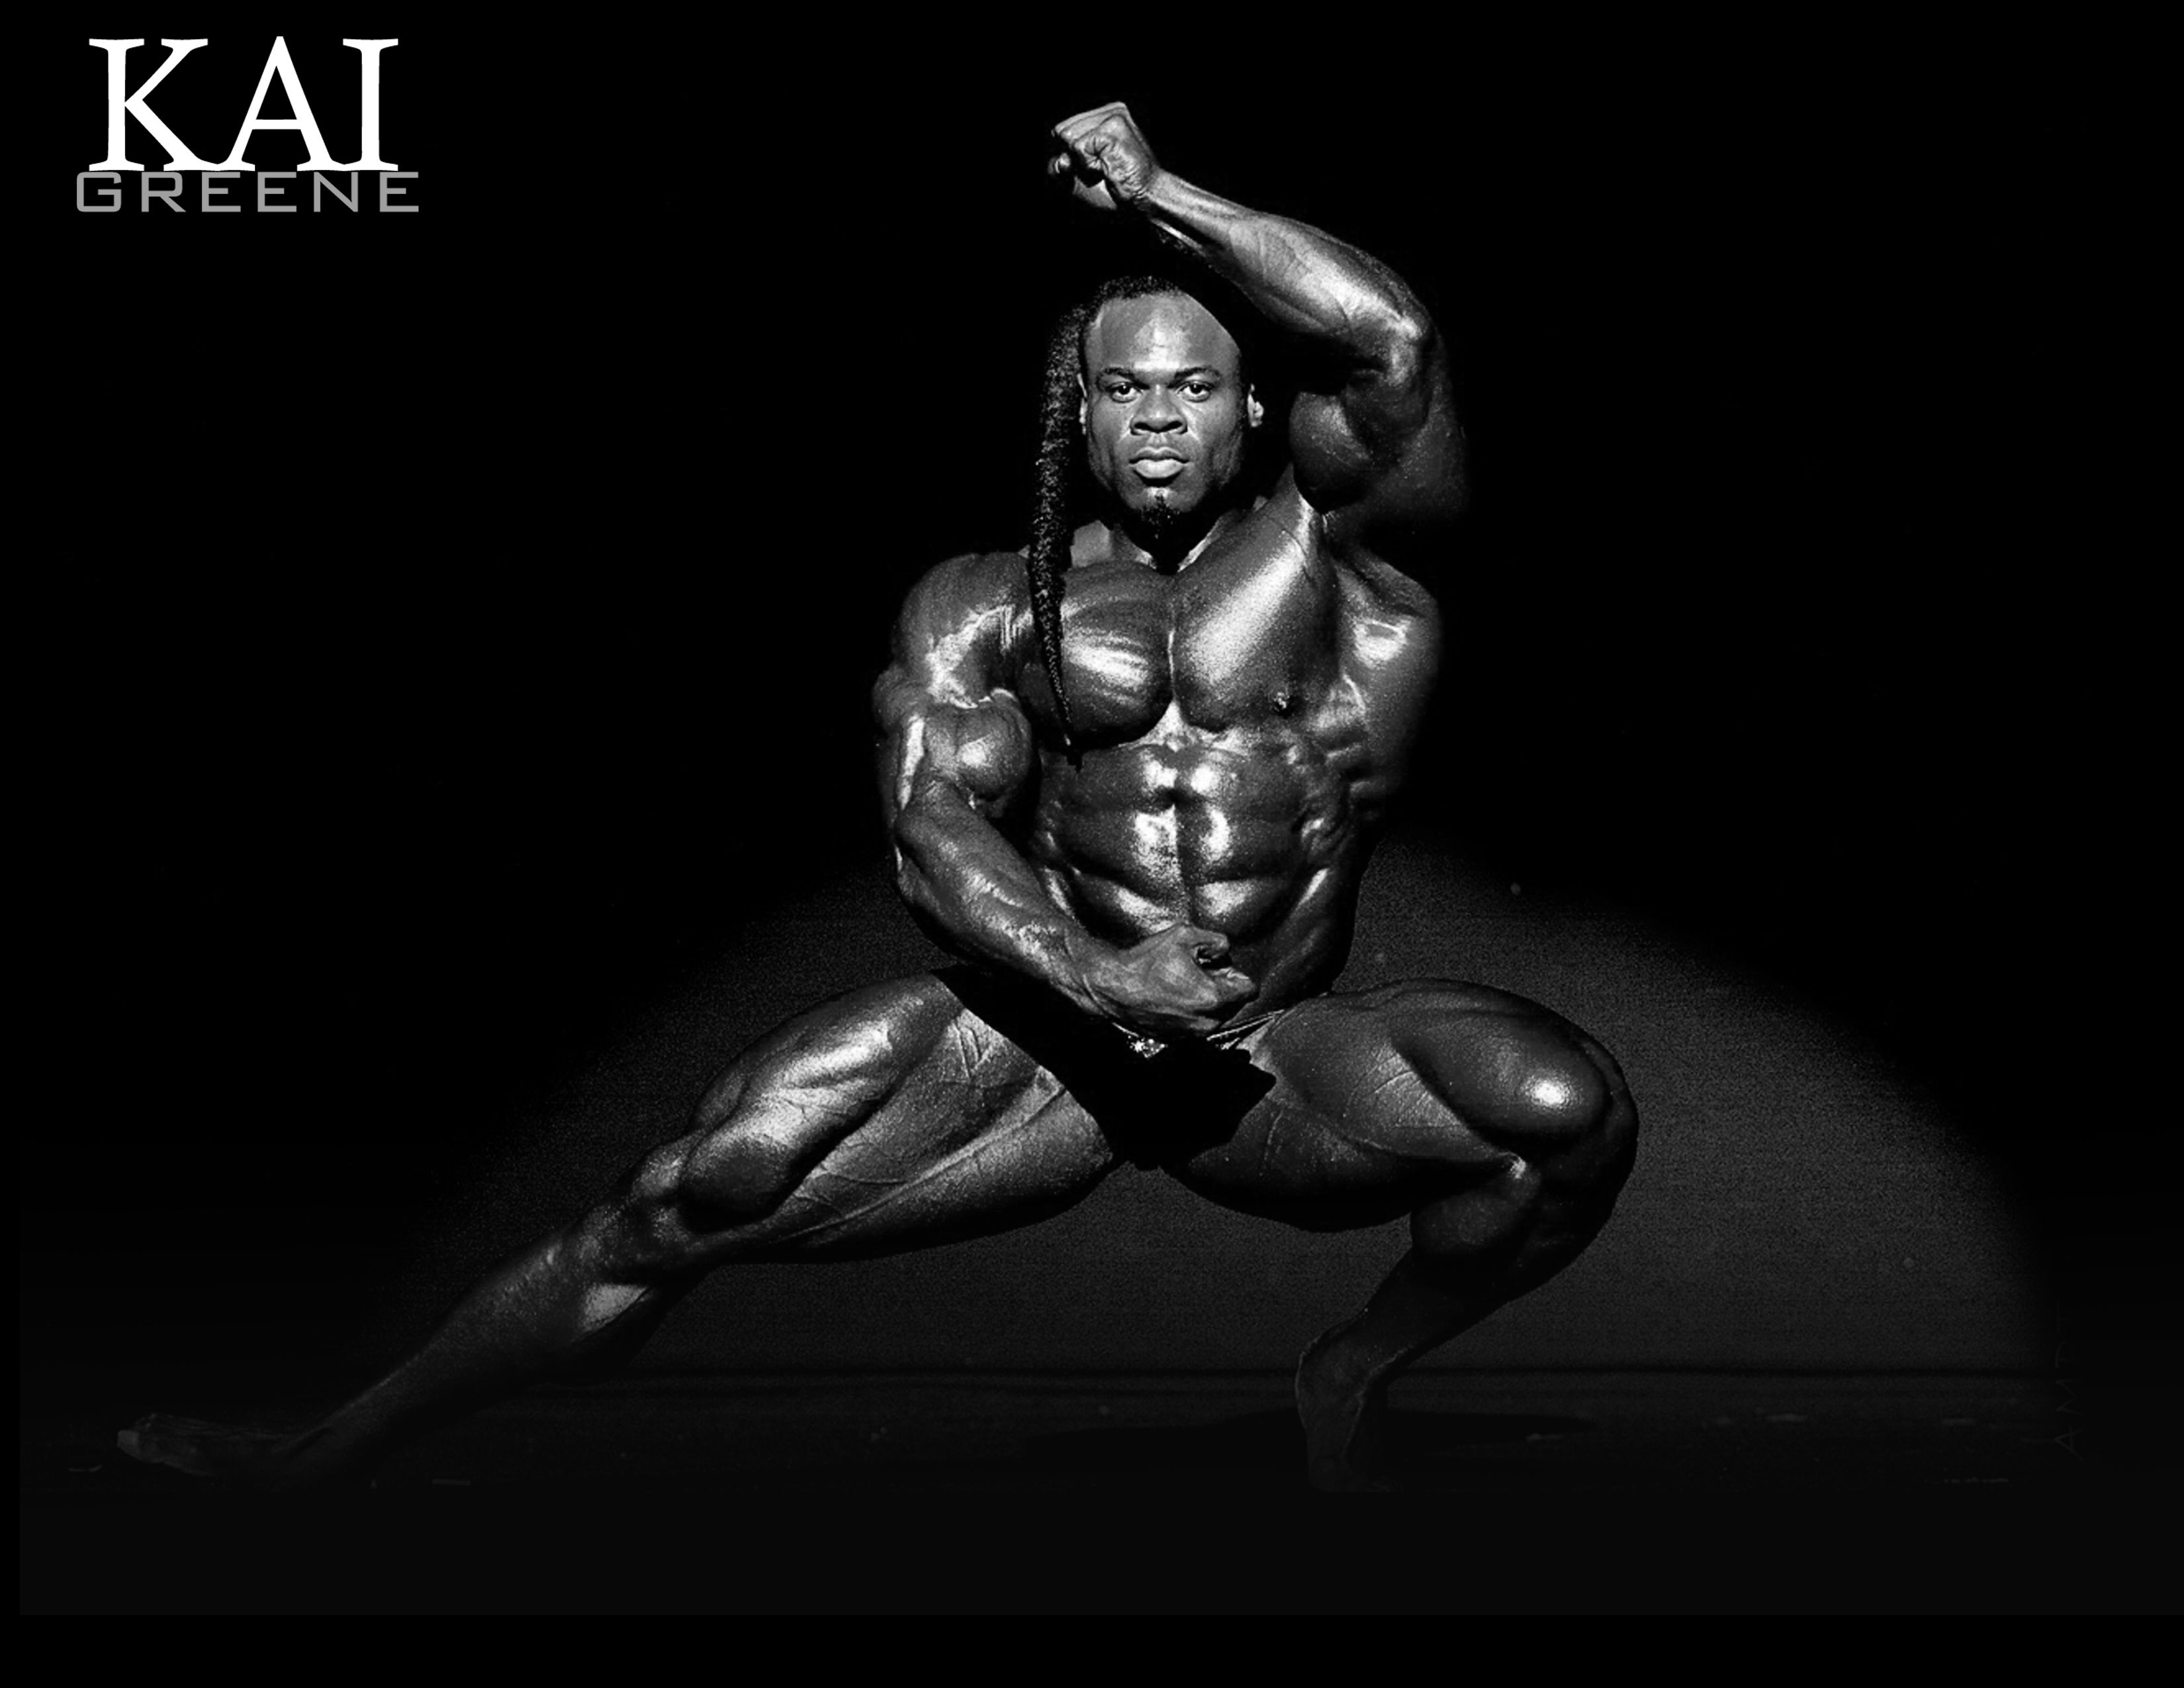 21 best The Art of Bodybuilding images on Pinterest   Bodybuilder ... for Bodybuilding Art Photography  26bof